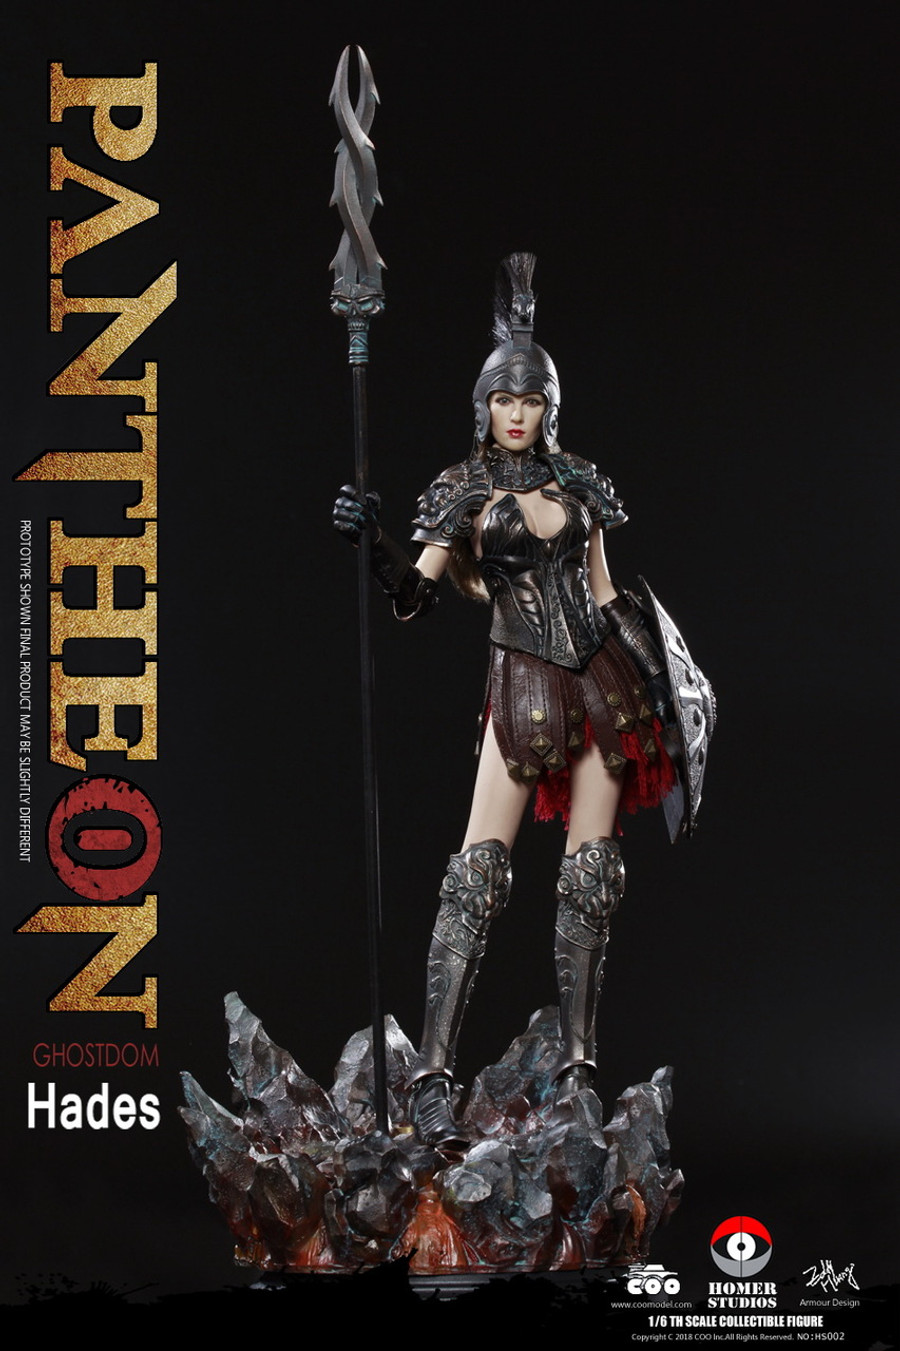 COO Model - Goddess of Underworld Hades